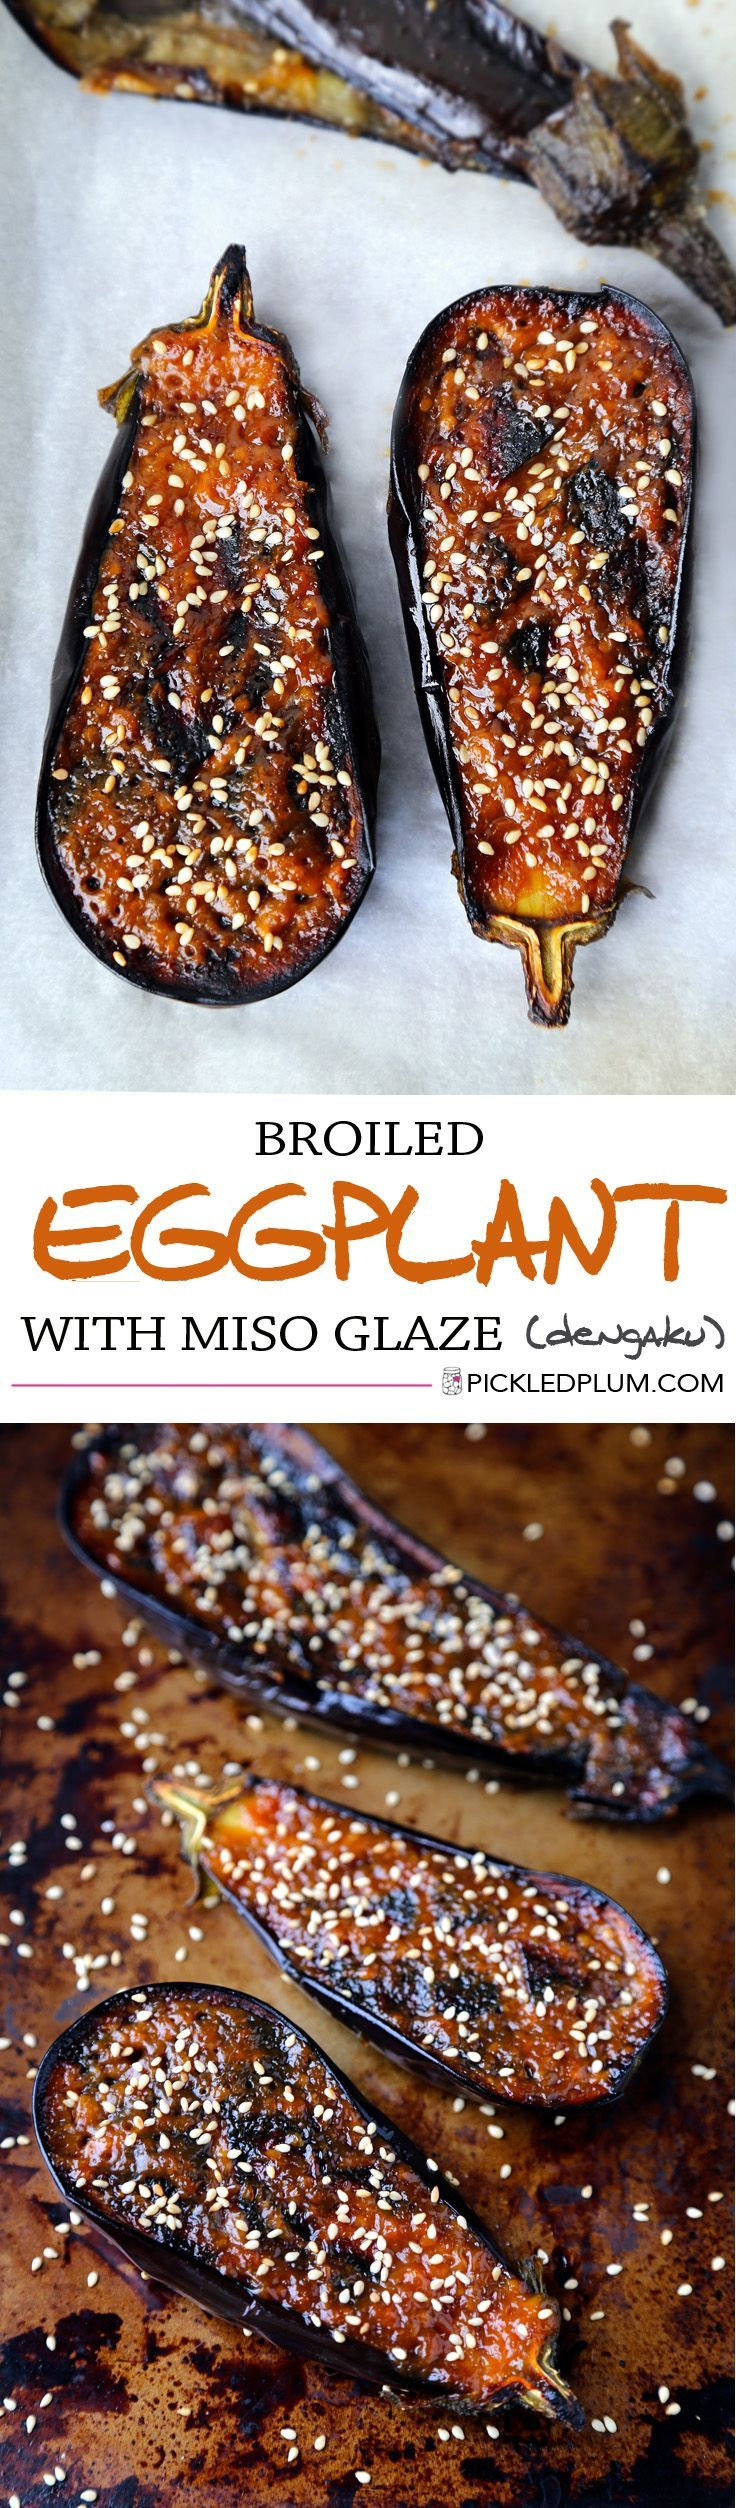 Nasu Dengaku Recipe - Japanese Broiled Eggplant with Miso Glaze - http://www.pickledplum.com/nasu-dengaku-recipe/